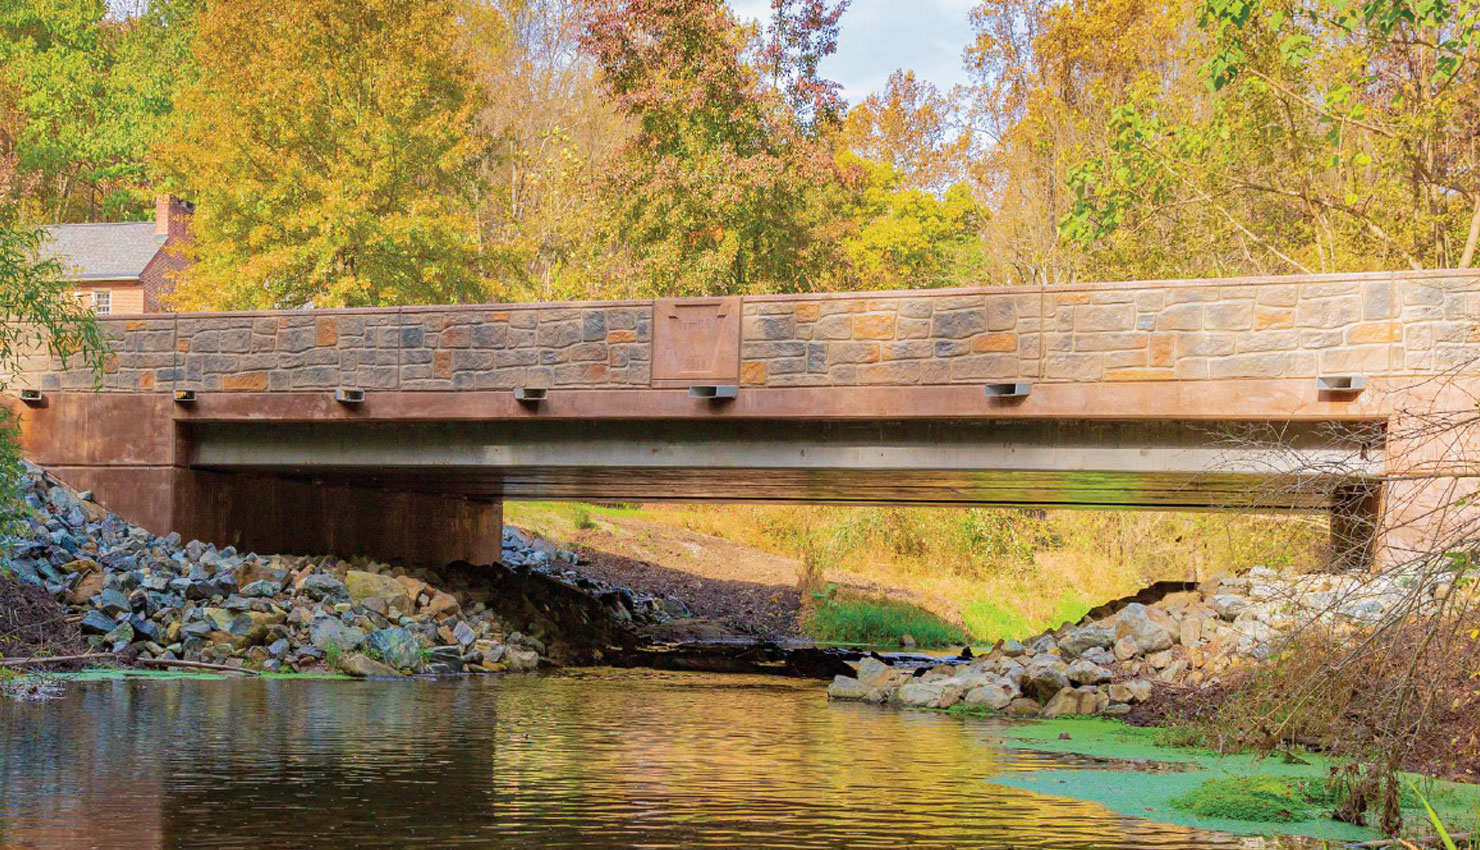 Rapid Bridge Replacement Project Newsletter - Issue 8: Fall 2018 / Winter 2019